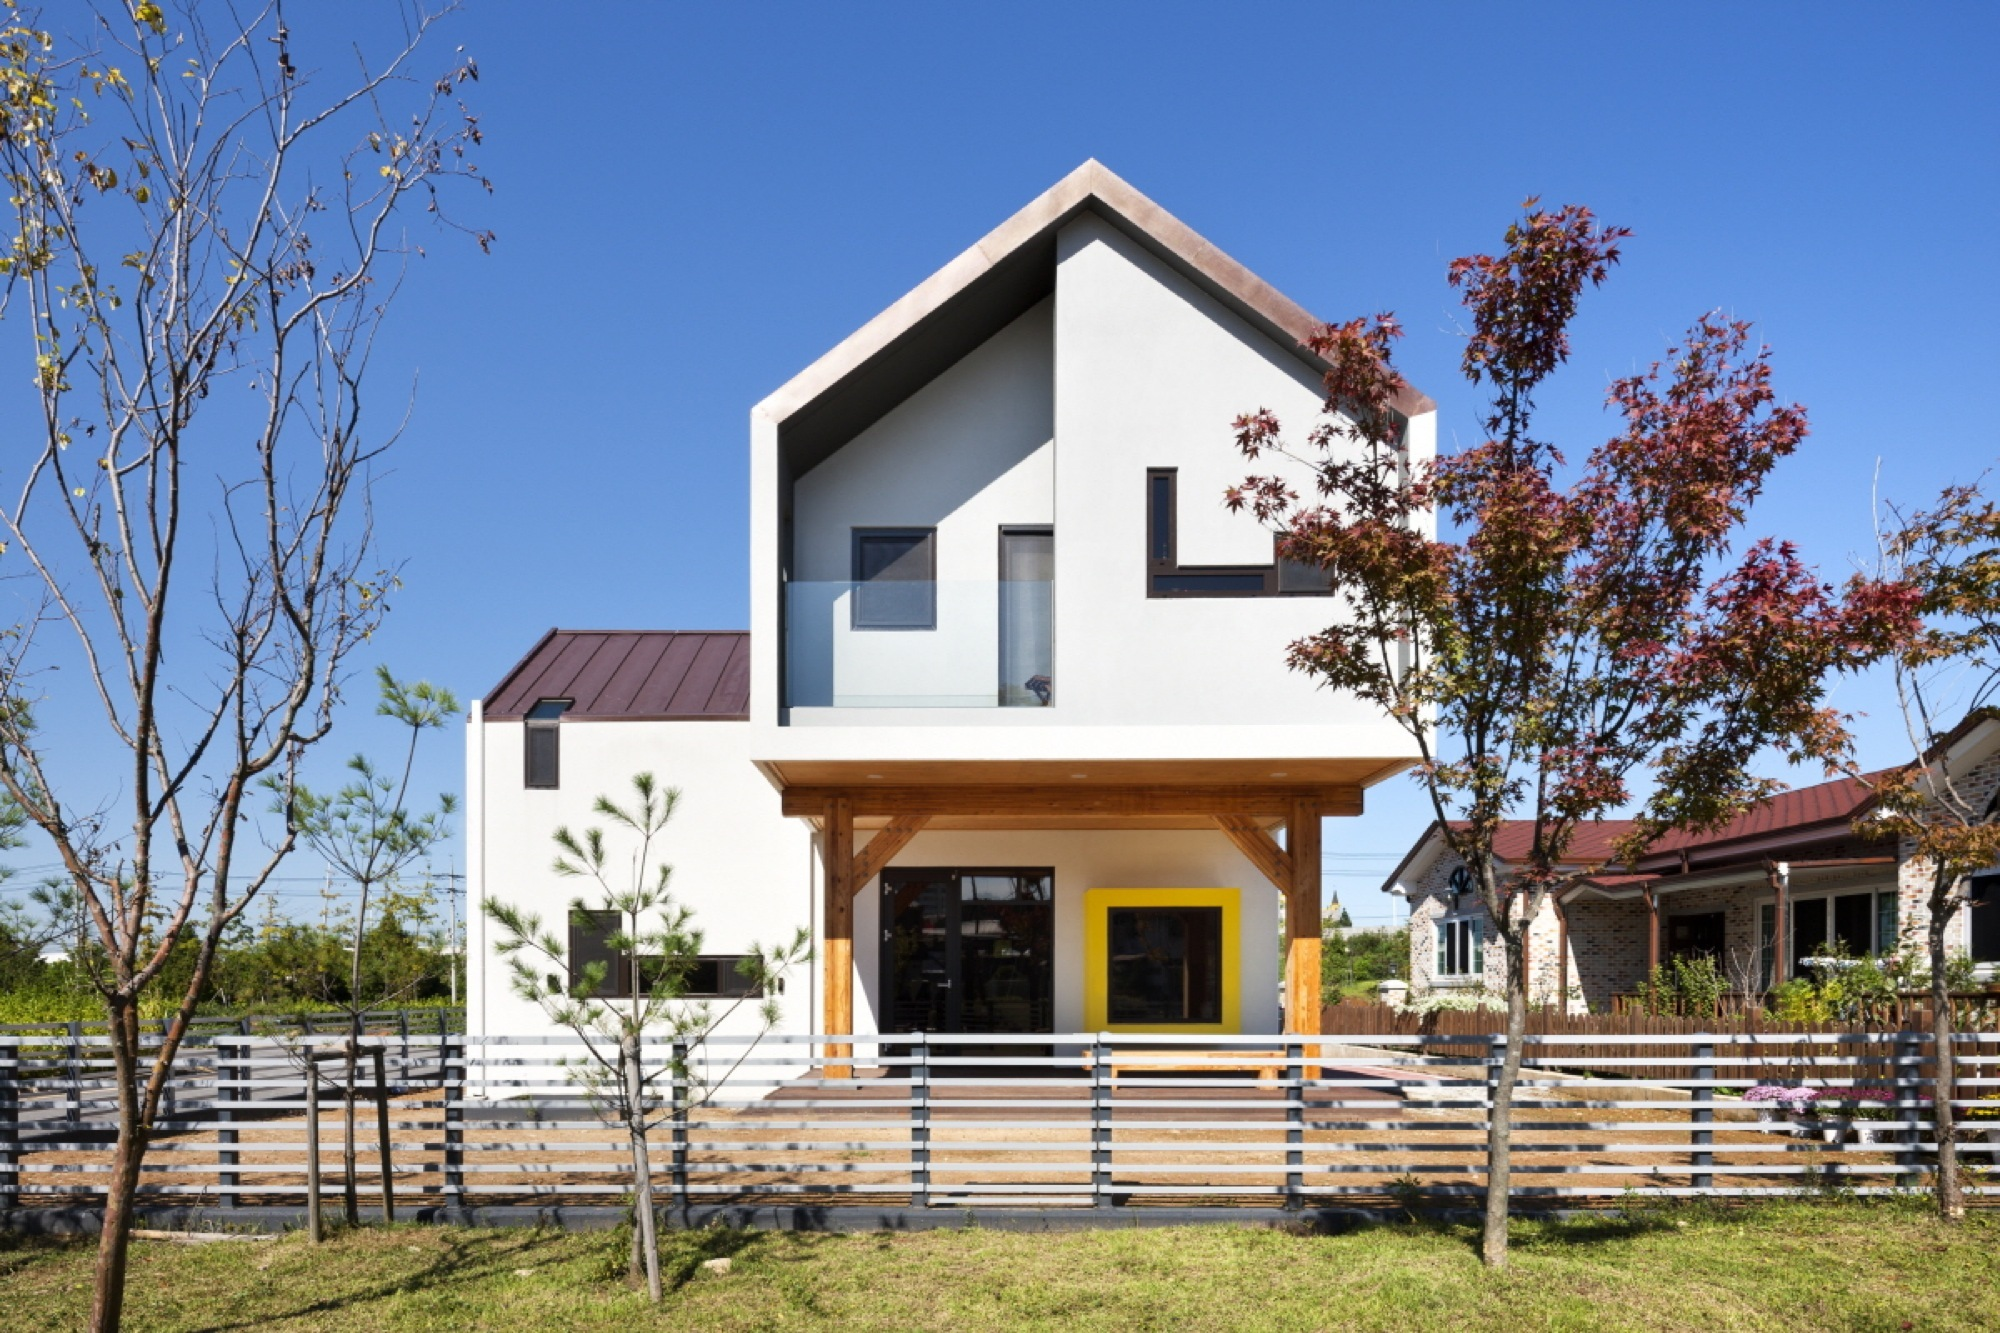 Gallery of Iksan T-House / KDDH architects - 1